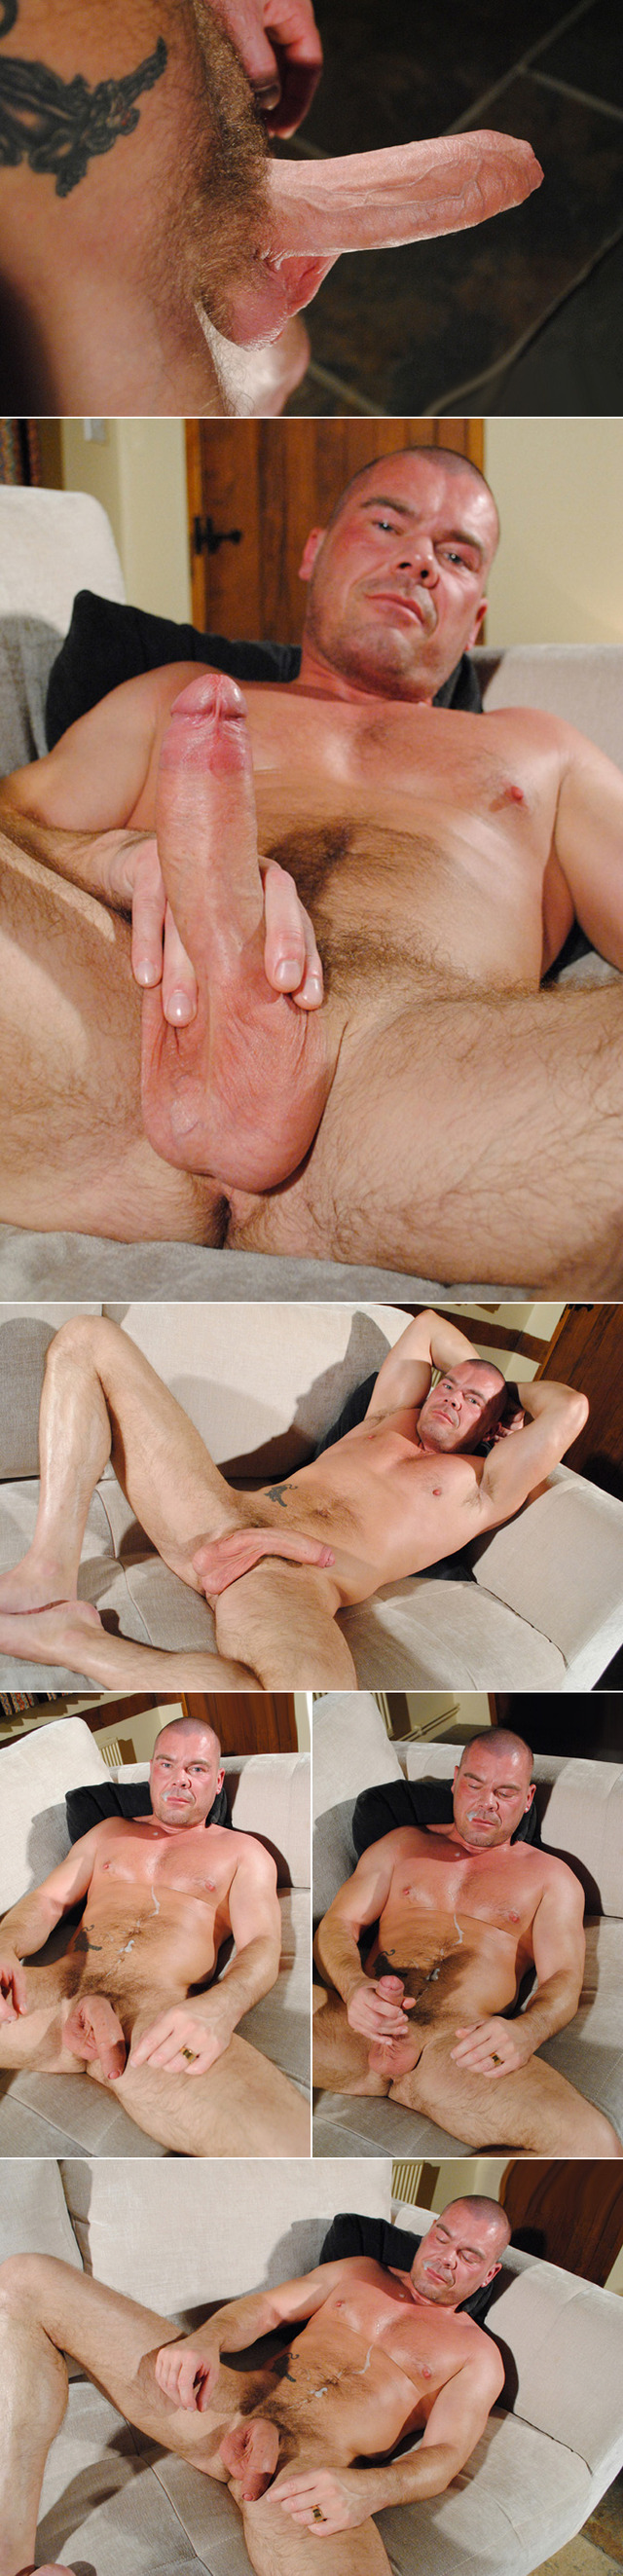 big daddy porn gay jake cock hard uncut collages lewis very brit lads meaty hardbritlads